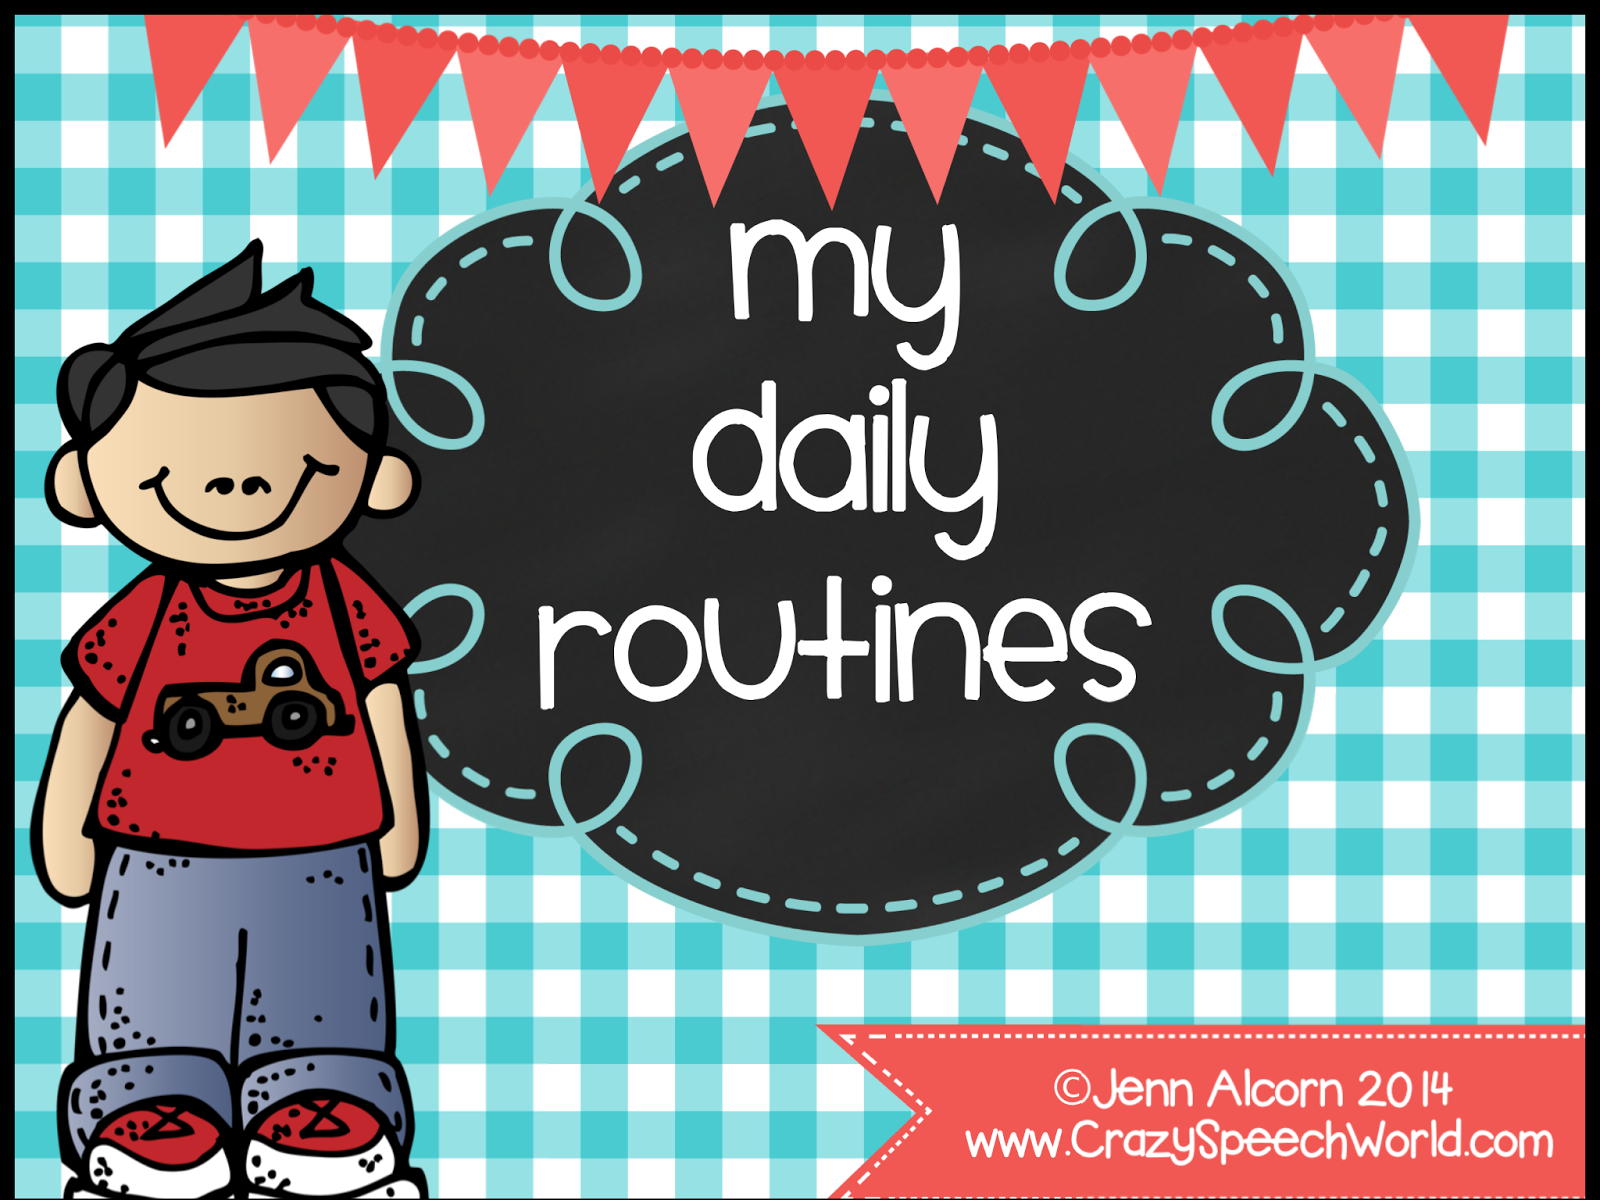 http://www.teacherspayteachers.com/Product/My-Daily-Routines-For-Speech-Therapy-Special-Education-Classrooms-1358999